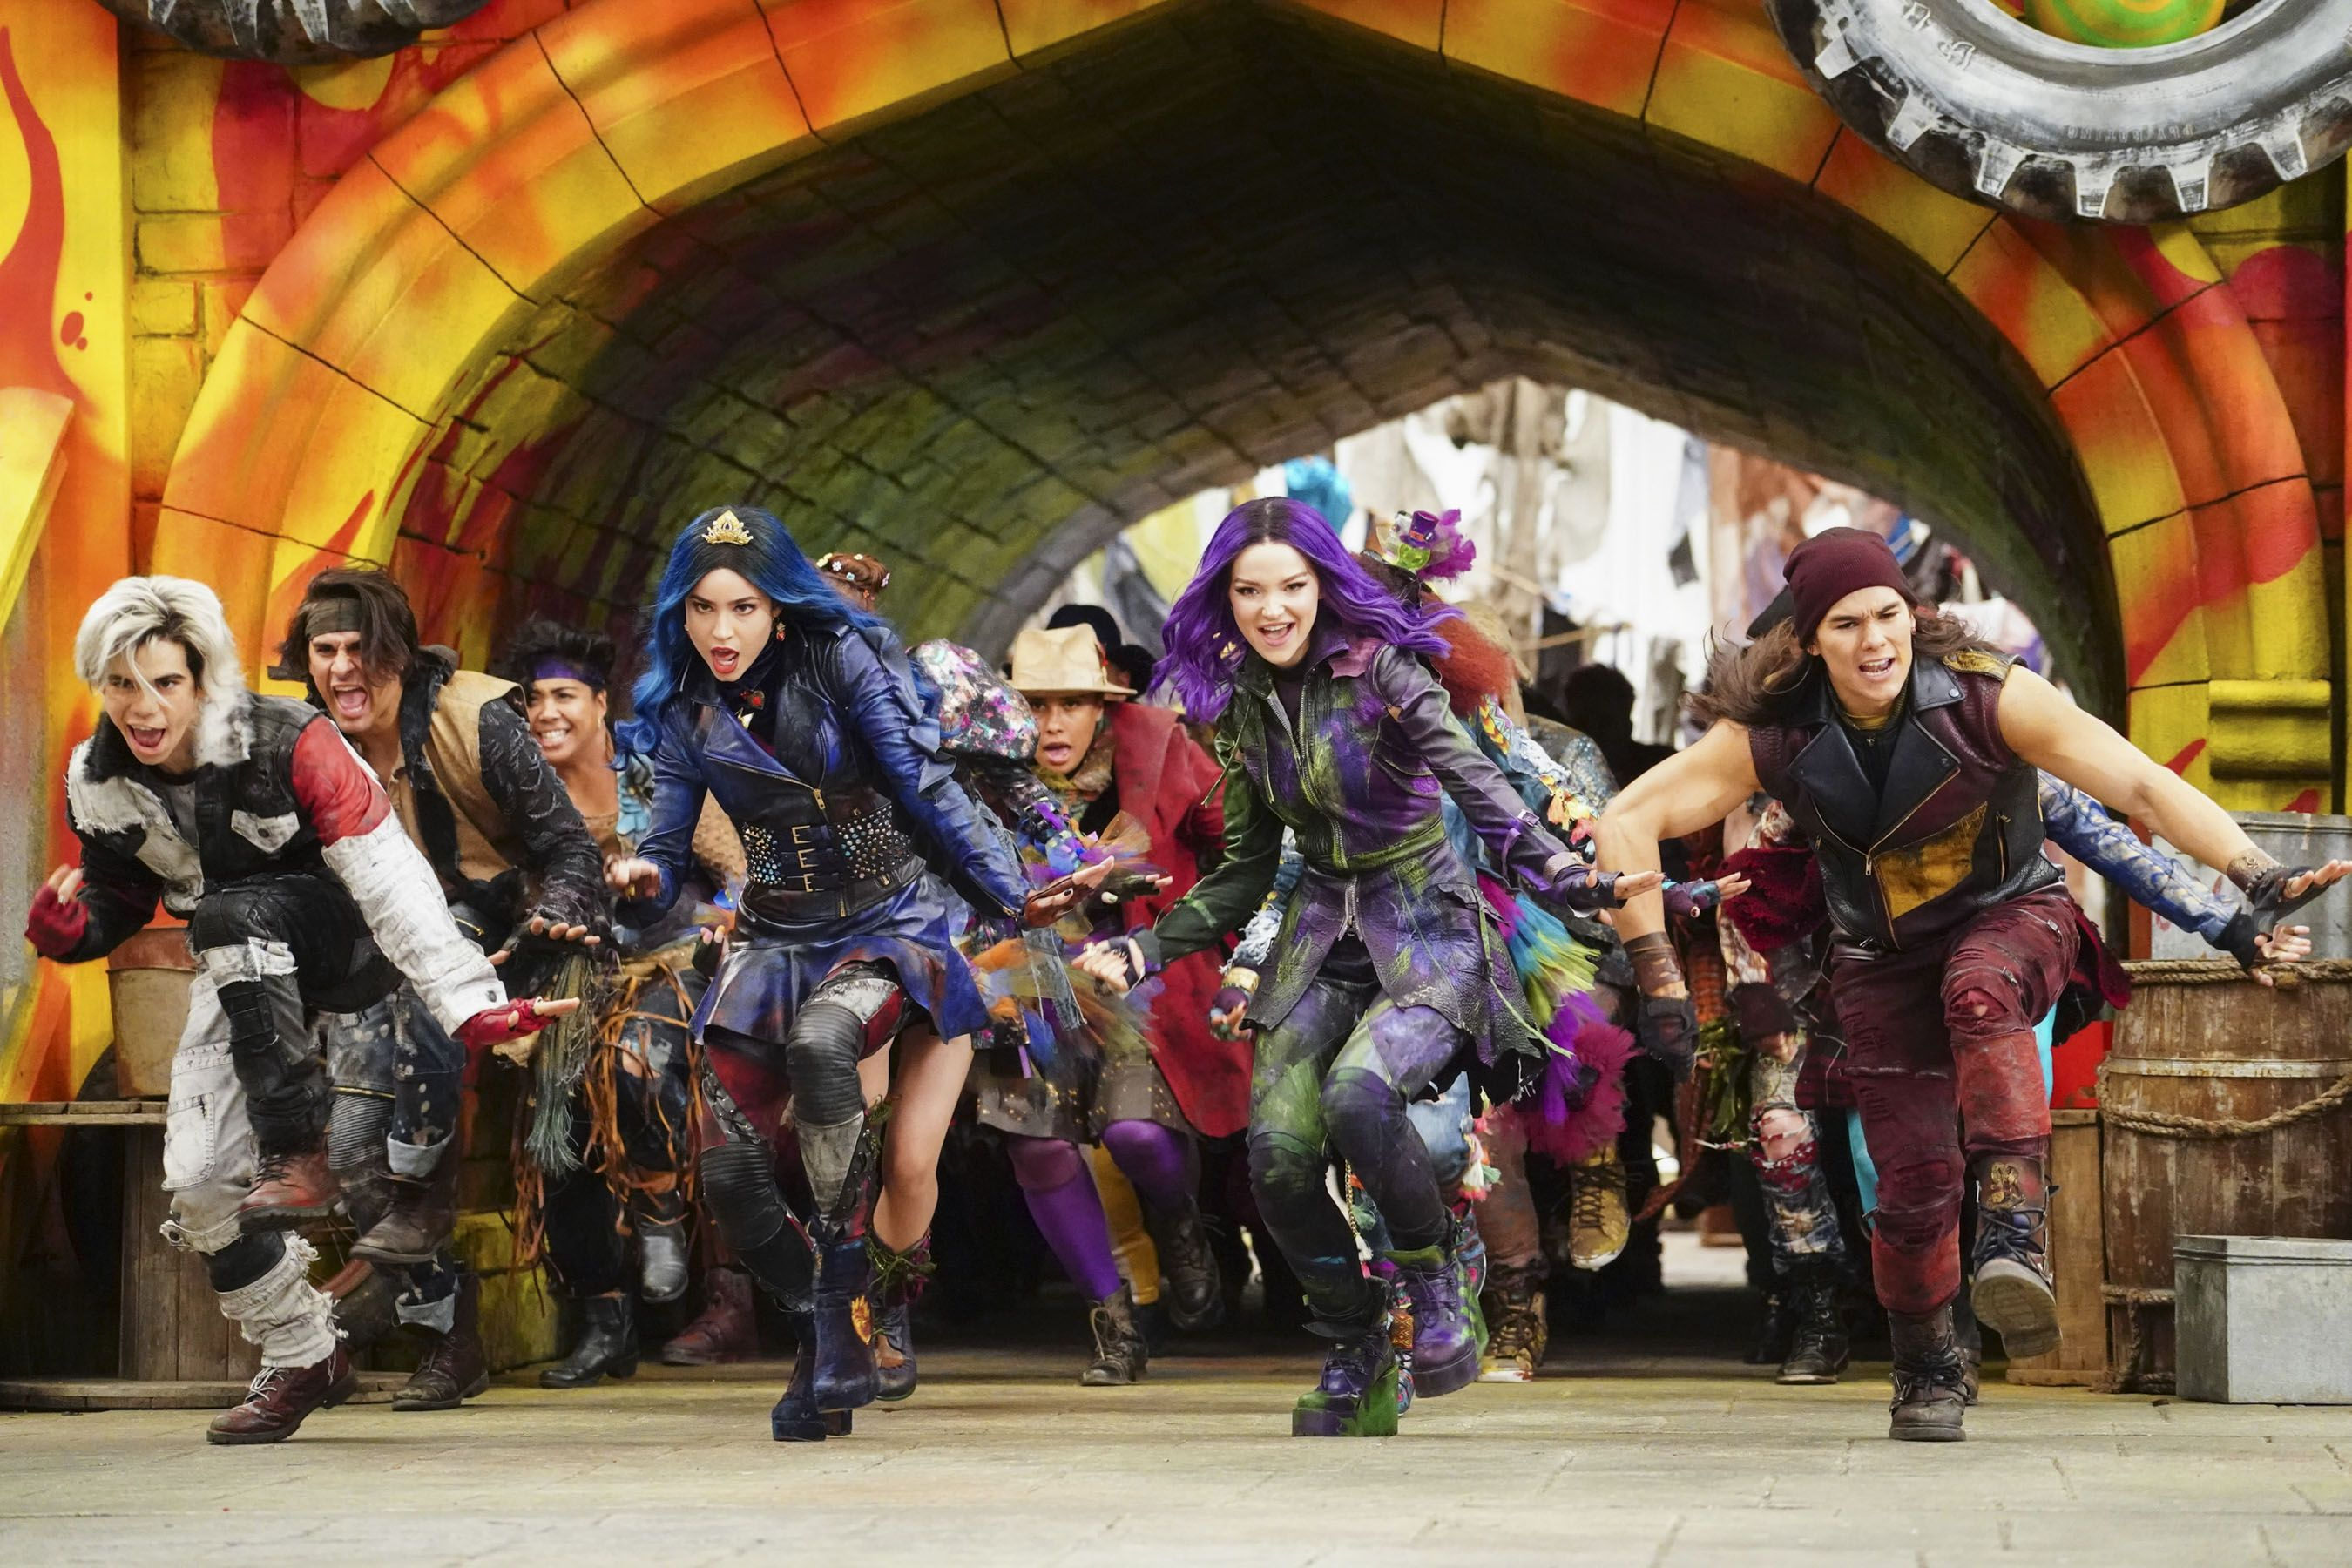 See the 'Descendants 3' cast in new music video, and find out the movie's premiere date #descendants3